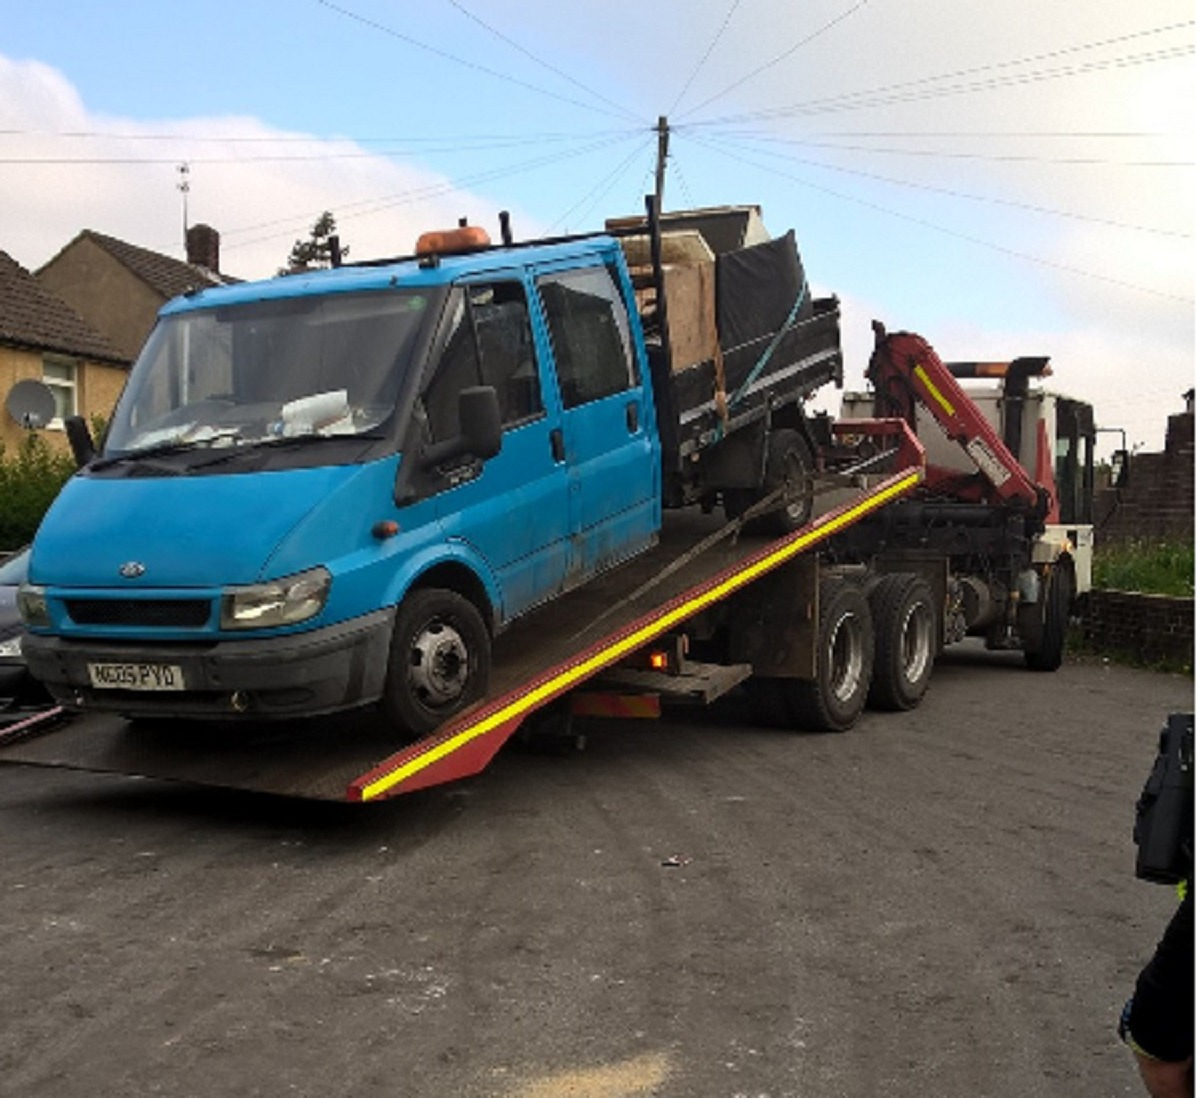 The tipper truck was seized in Wyke after an anonymous tip-off from the public. The vehicle had been seen fly-tipping